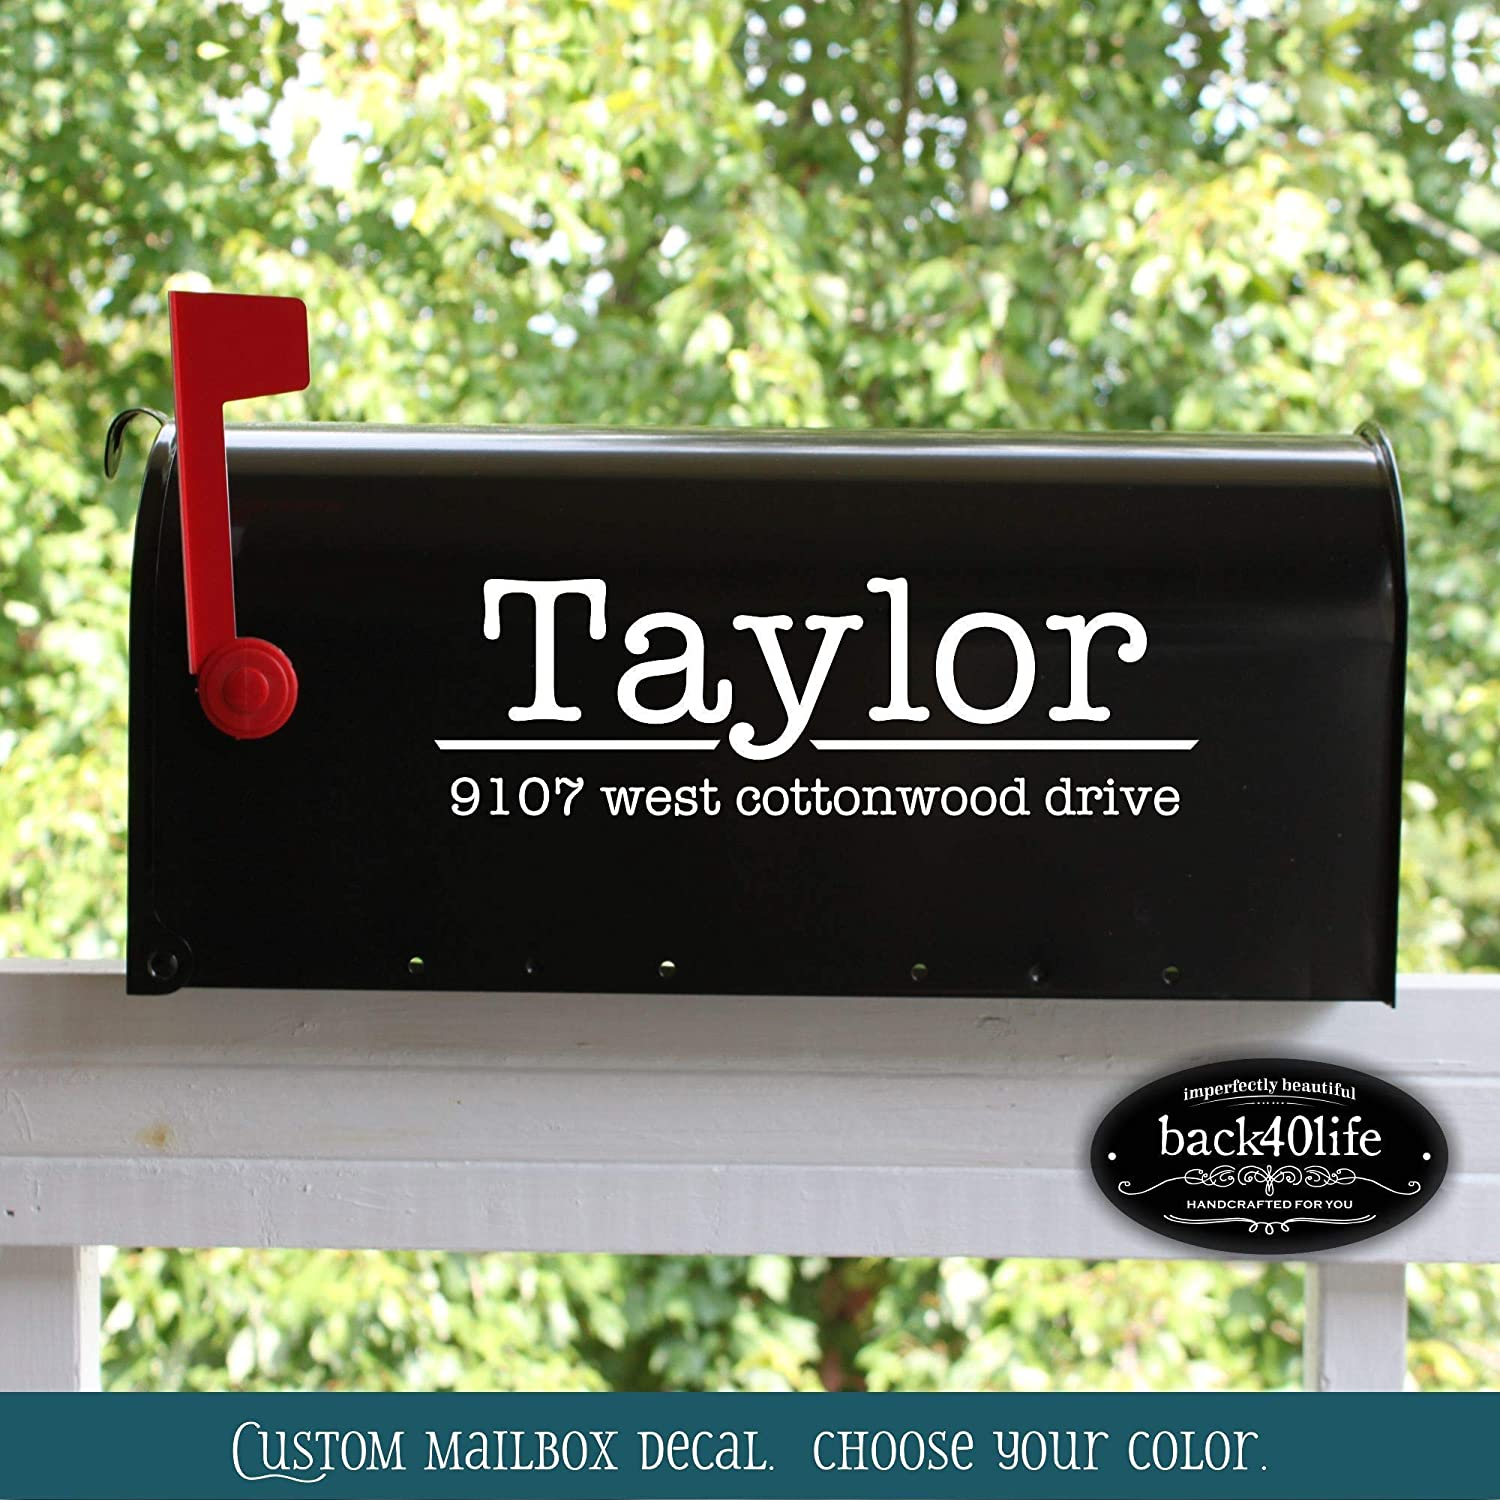 Typewriter Style Mailbox Numbers Street Address Only Vinyl Decal (E-004m)